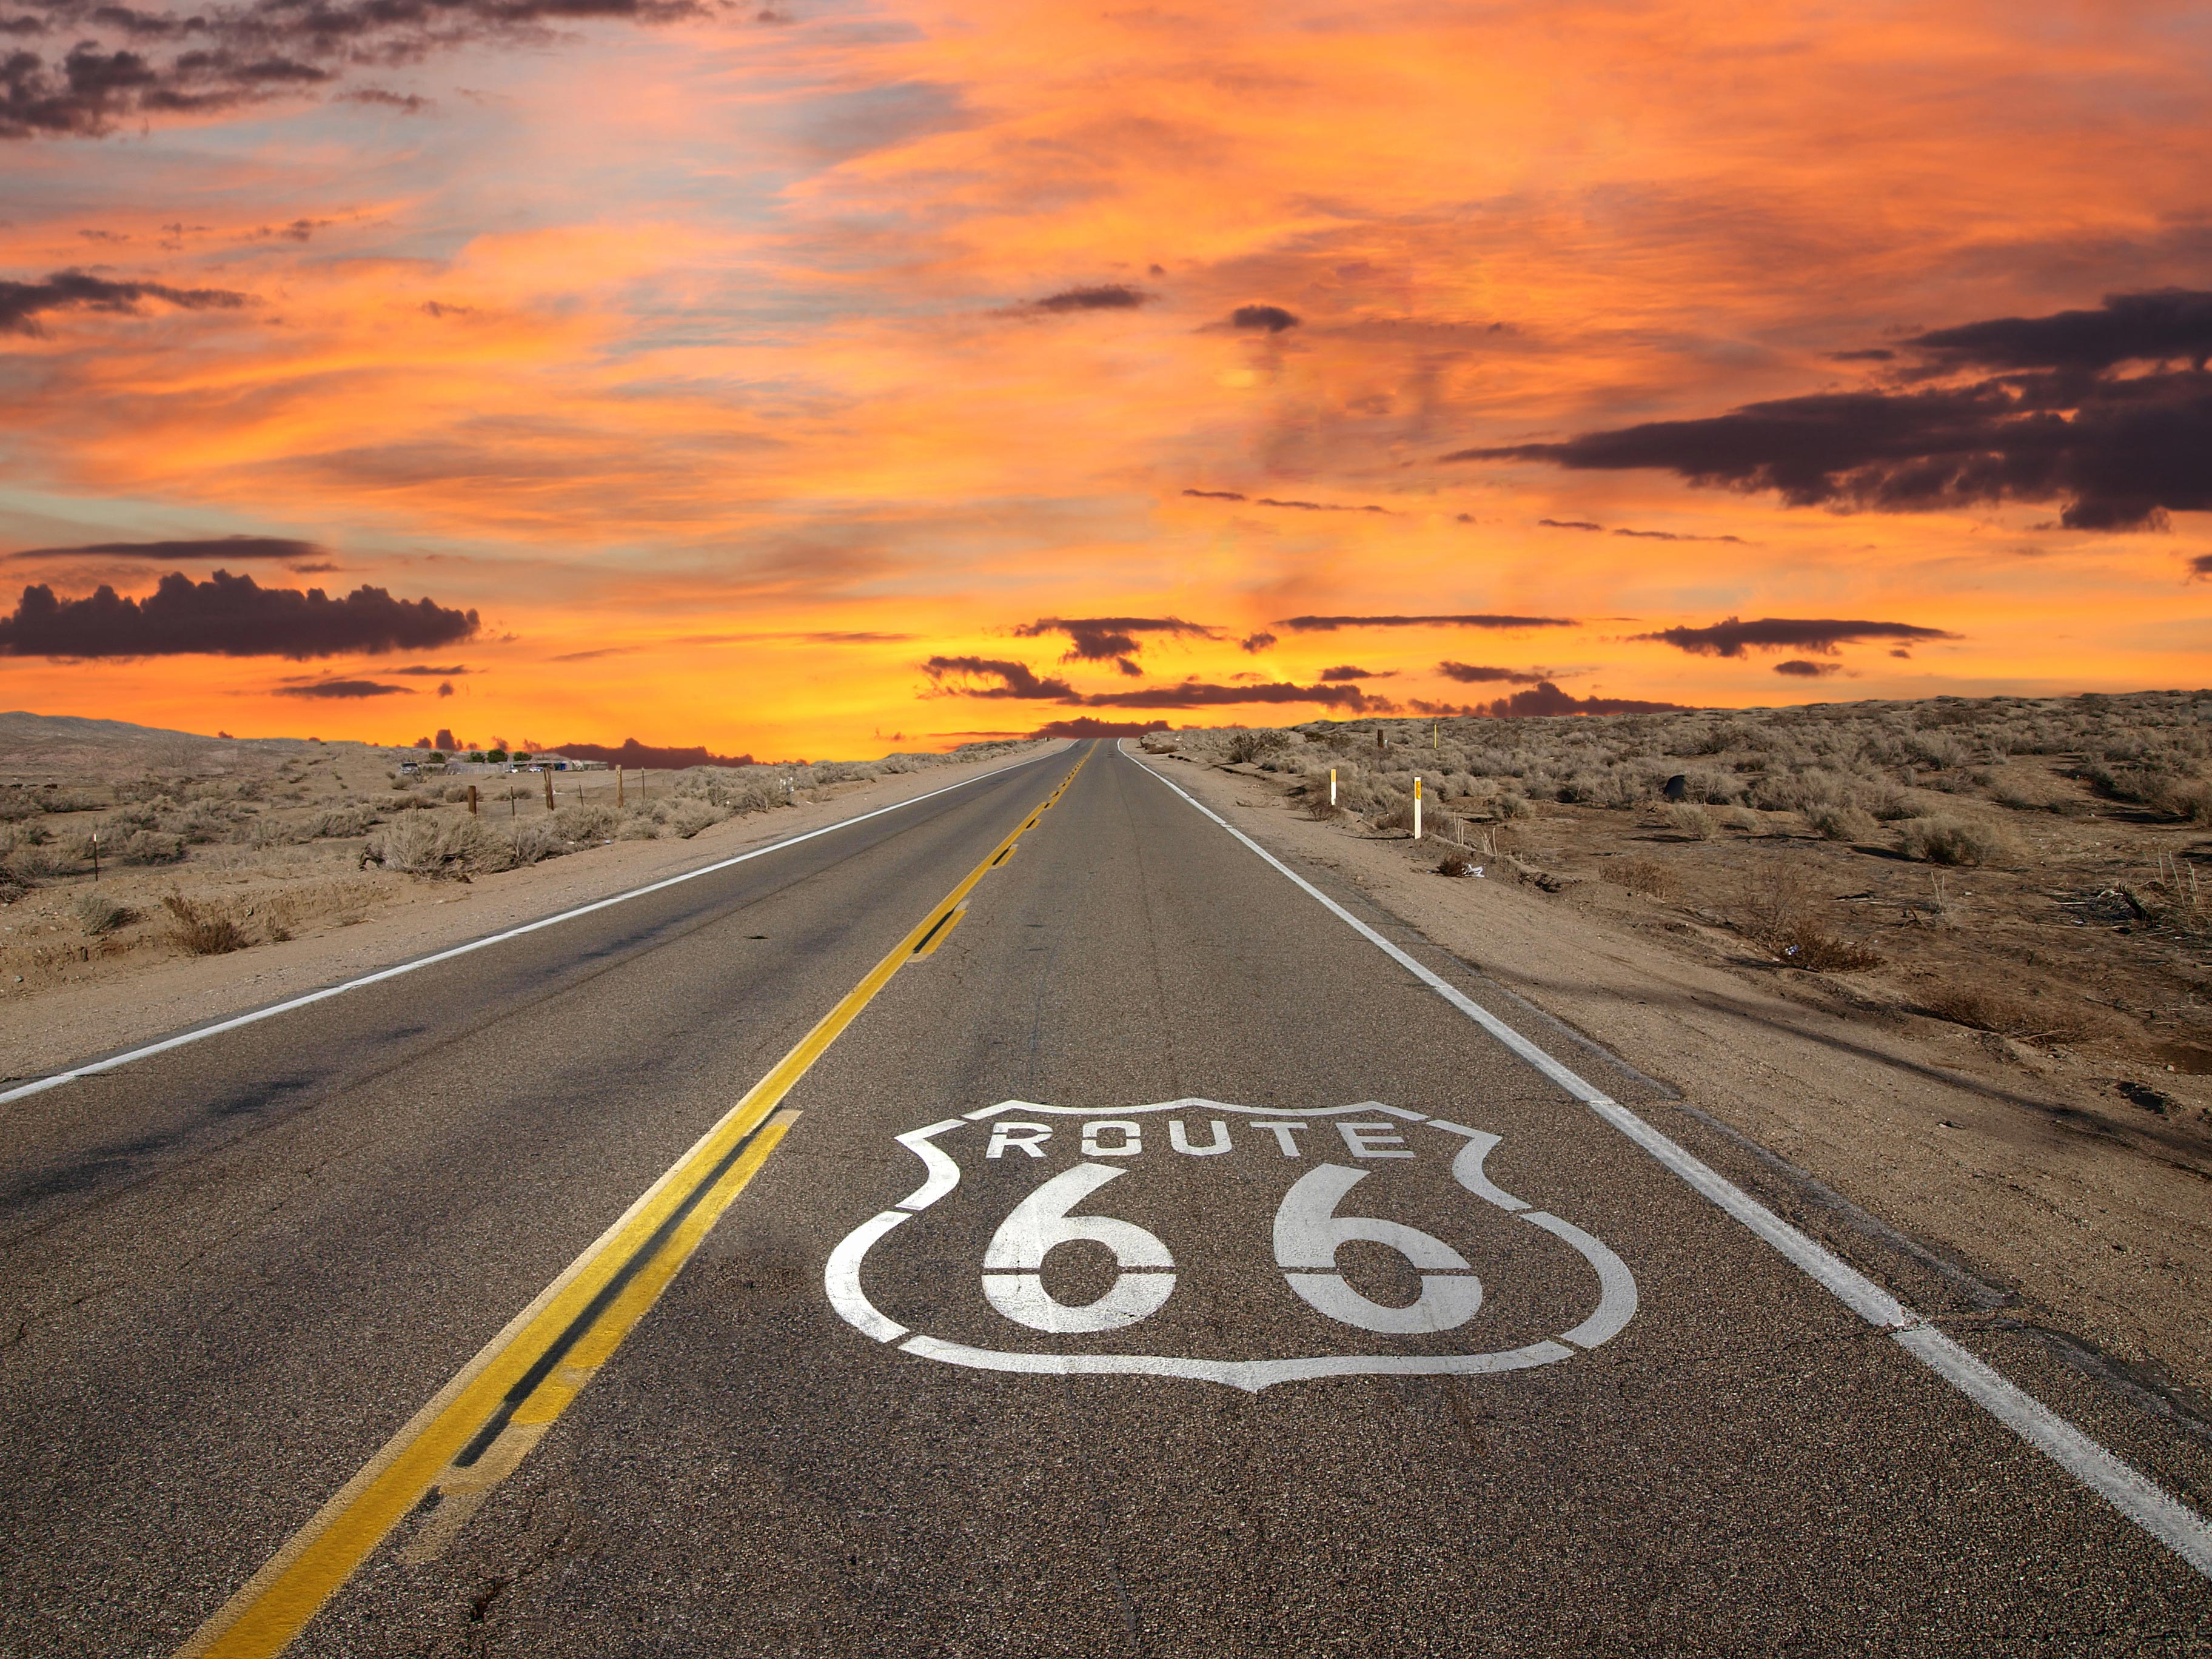 usa decouverte de la route 66